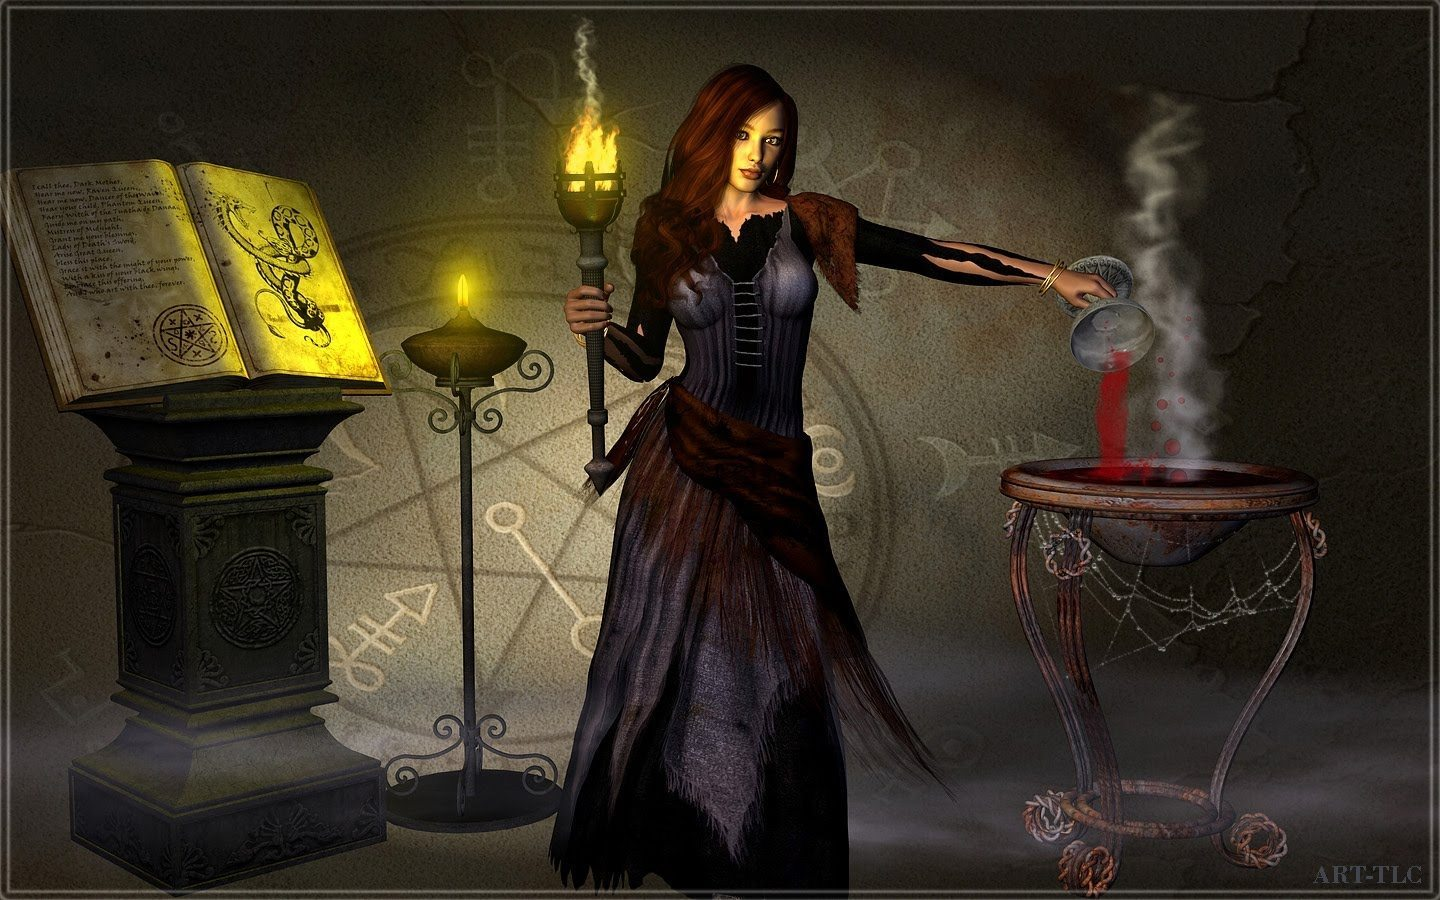 Sorcery versus Witchcraft – The Difference of Science and Relationships